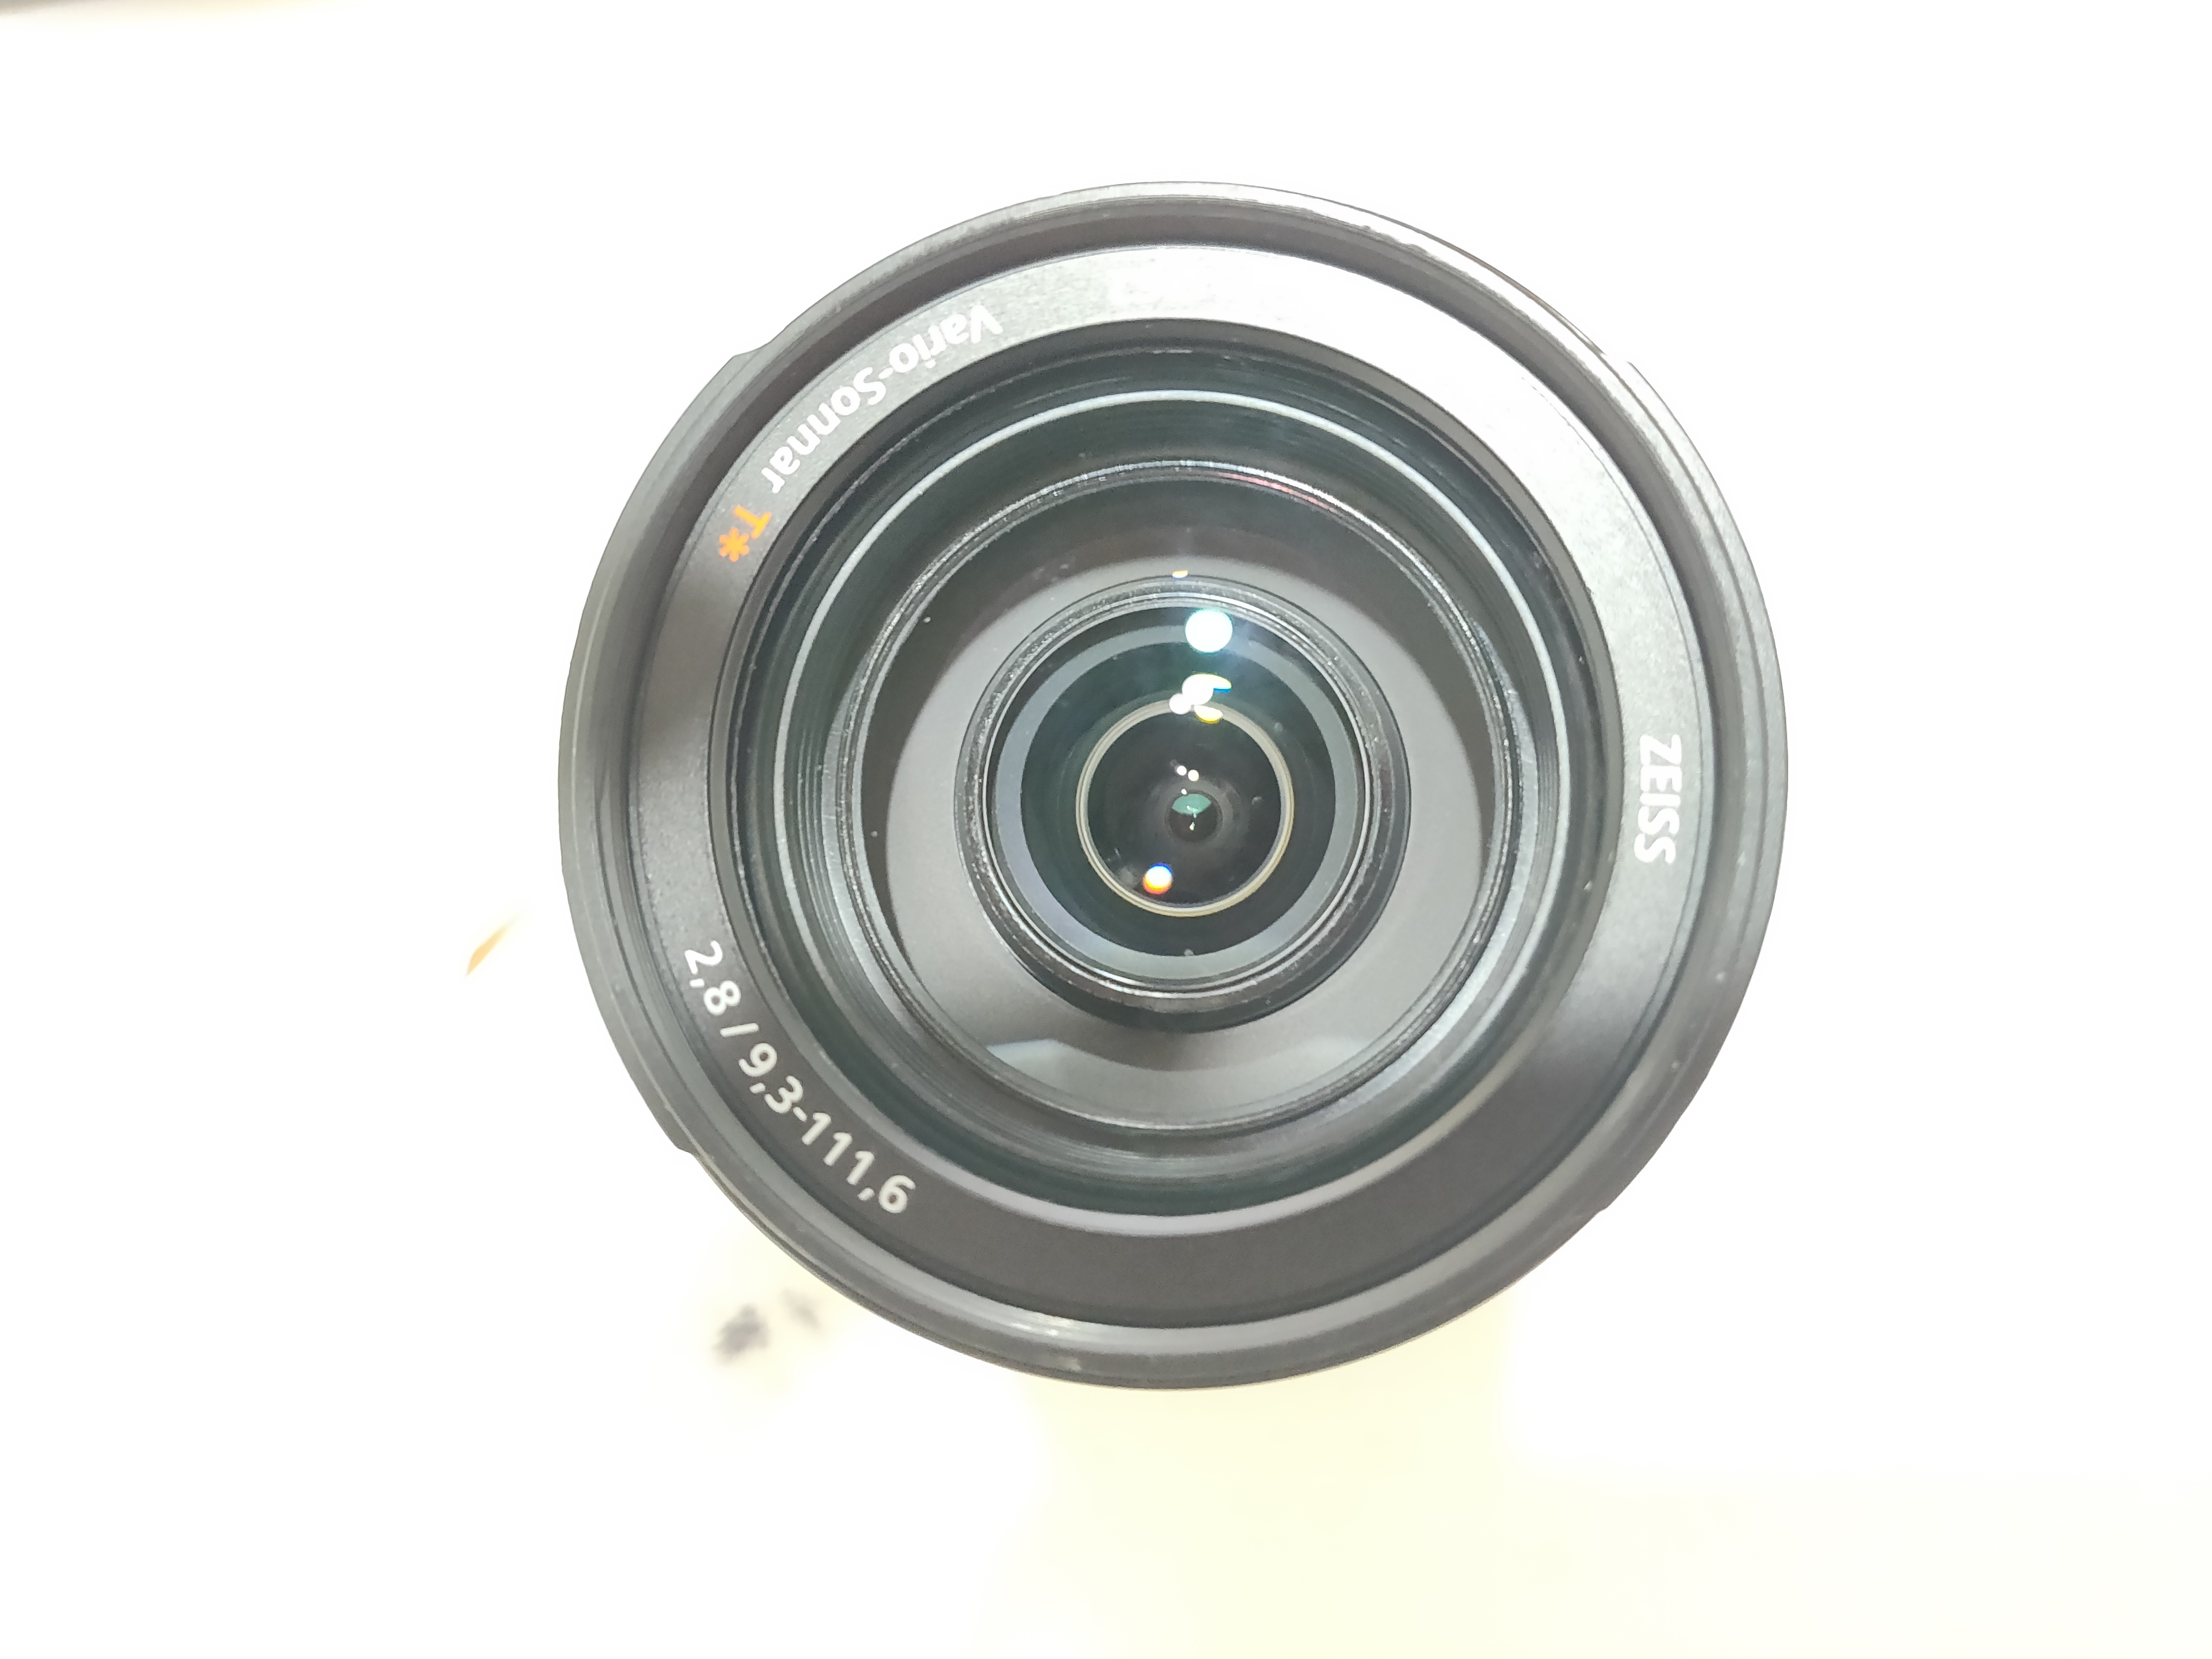 New Optical lens assy without CCD / ...